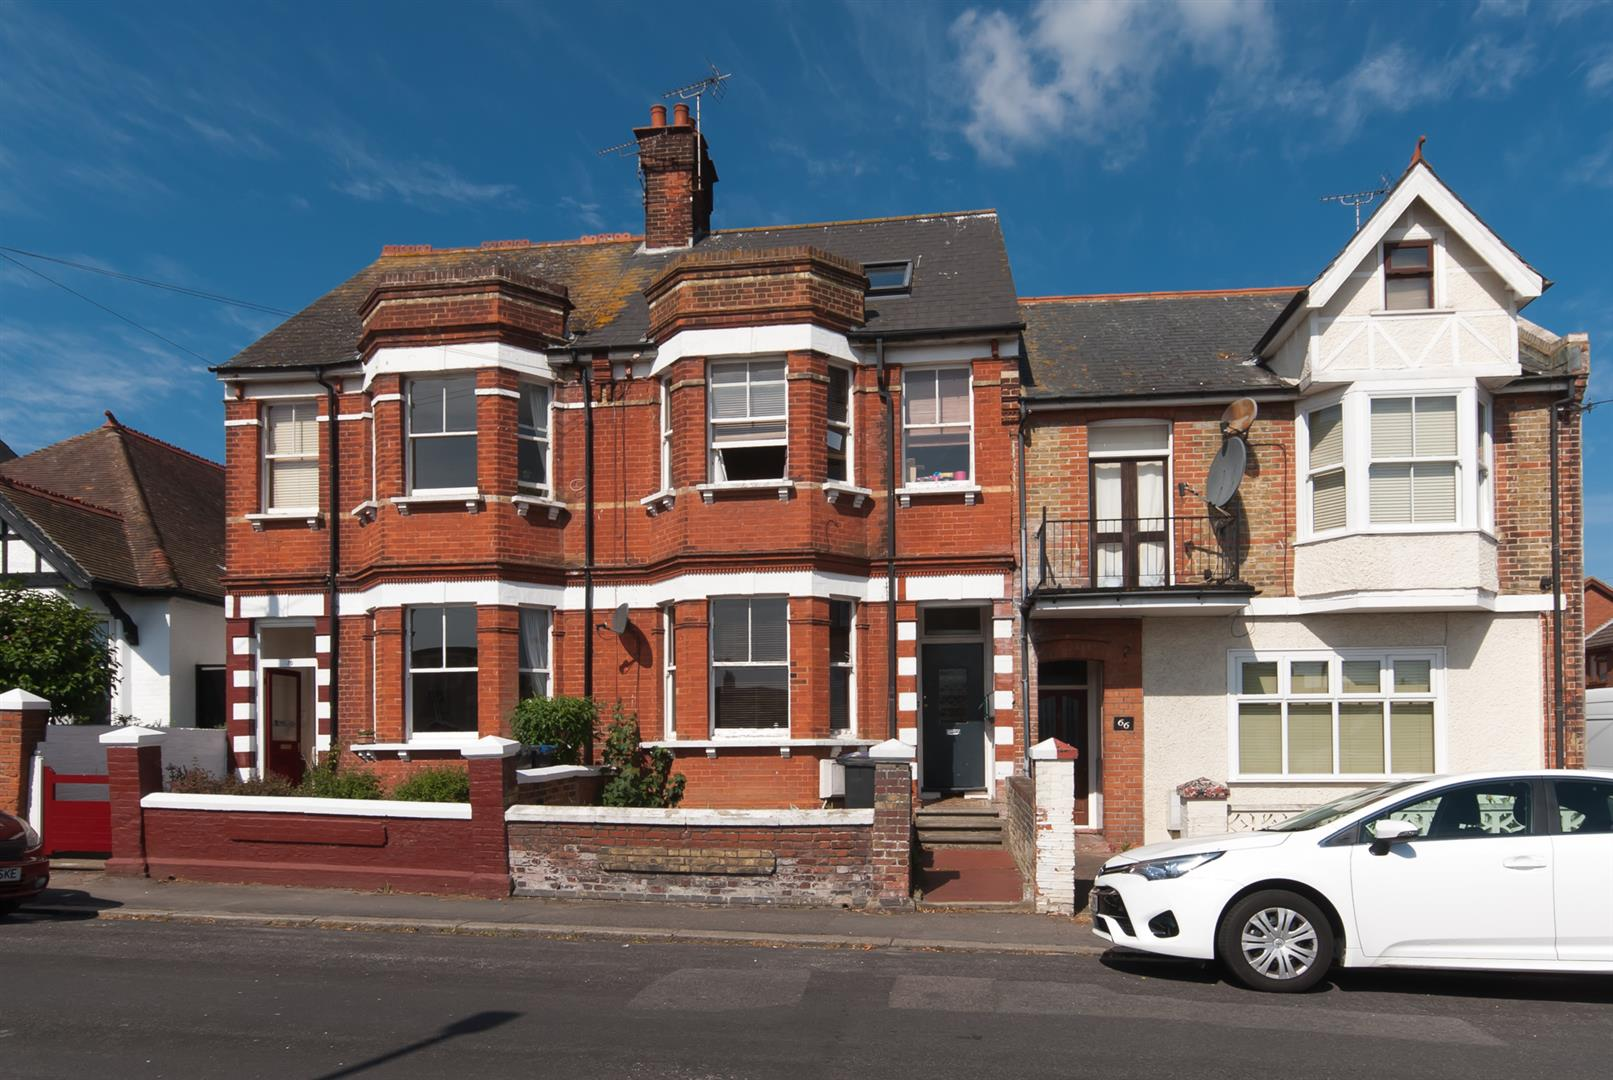 4 Bedrooms House for sale in Victoria Avenue, Westgate-On-Sea